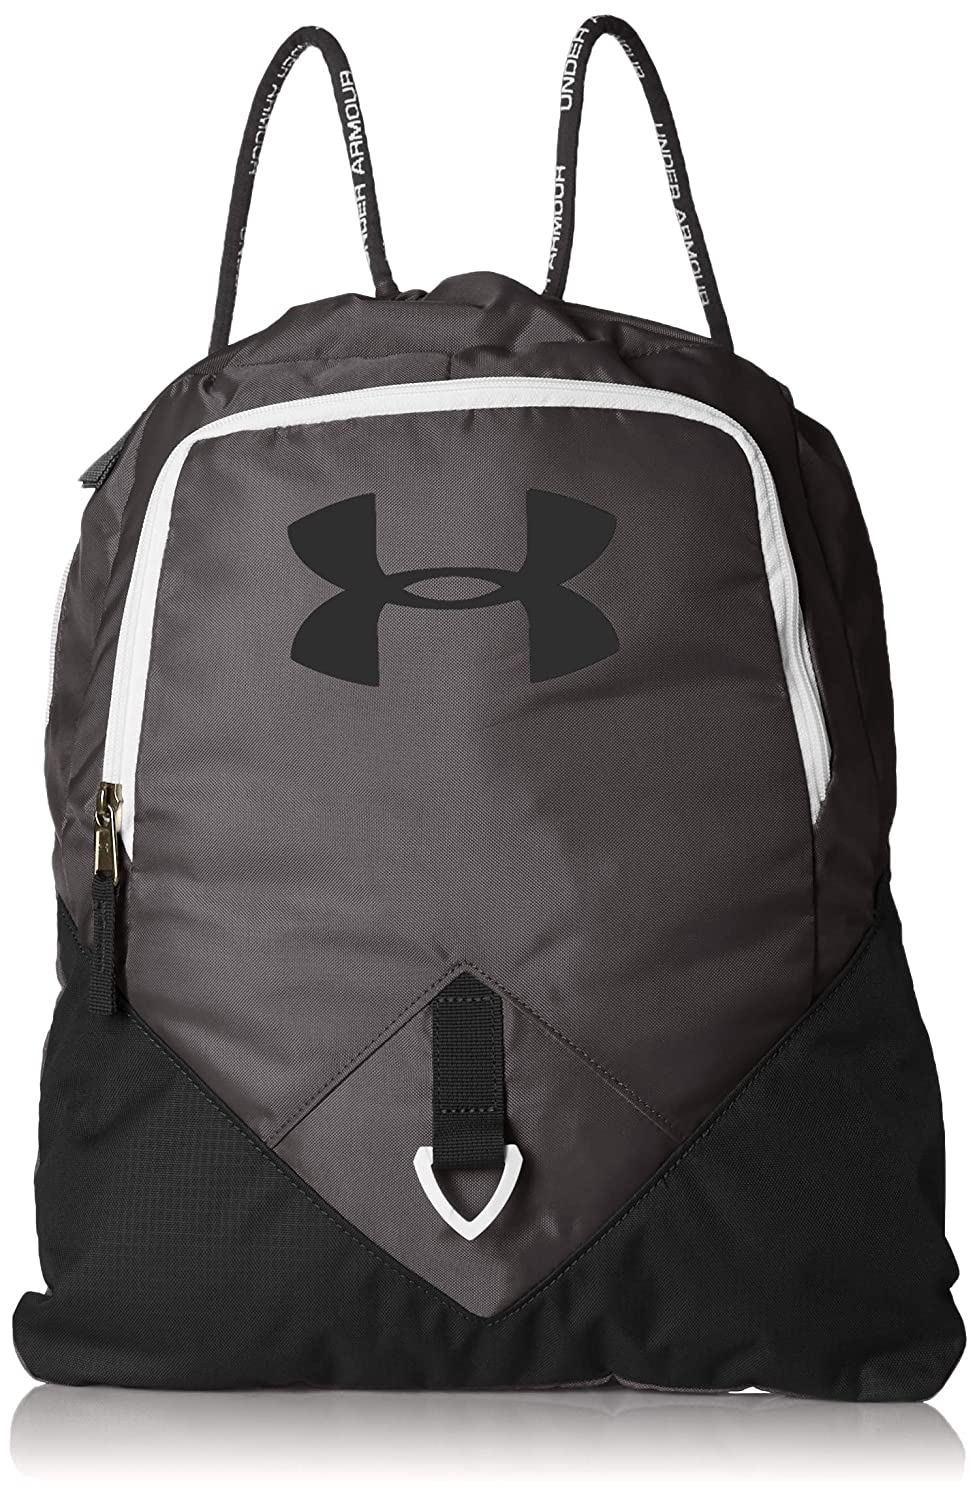 3c46055ea9ab Under Armour Undeniable Sackpack  Amazon.ca  Sports   Outdoors